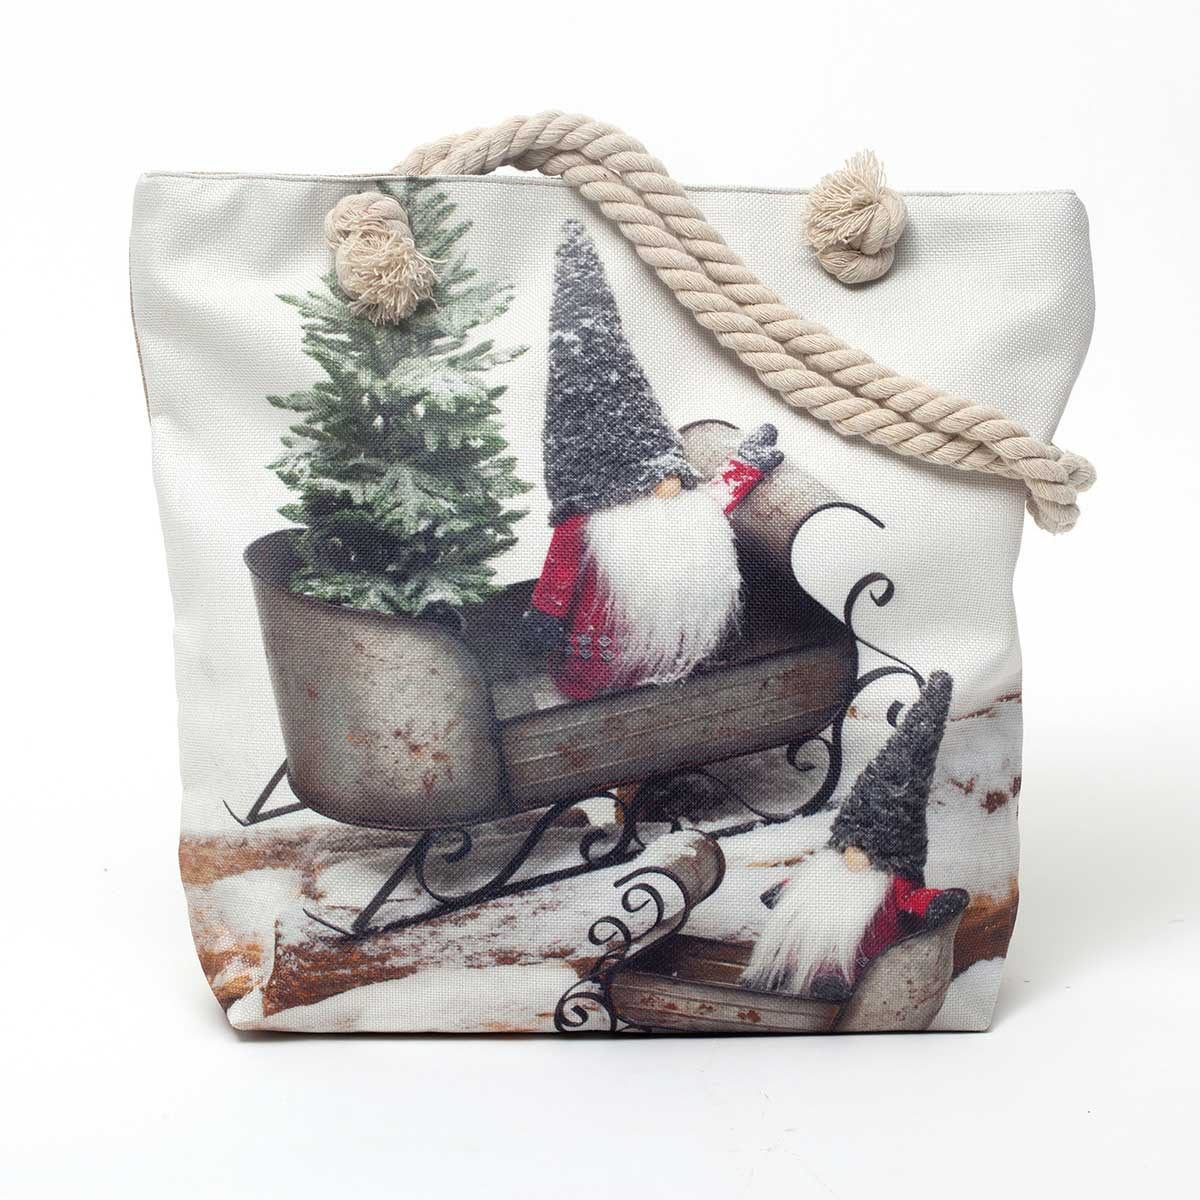 ***NEW*** Gnome in Sleigh Christmas Bag